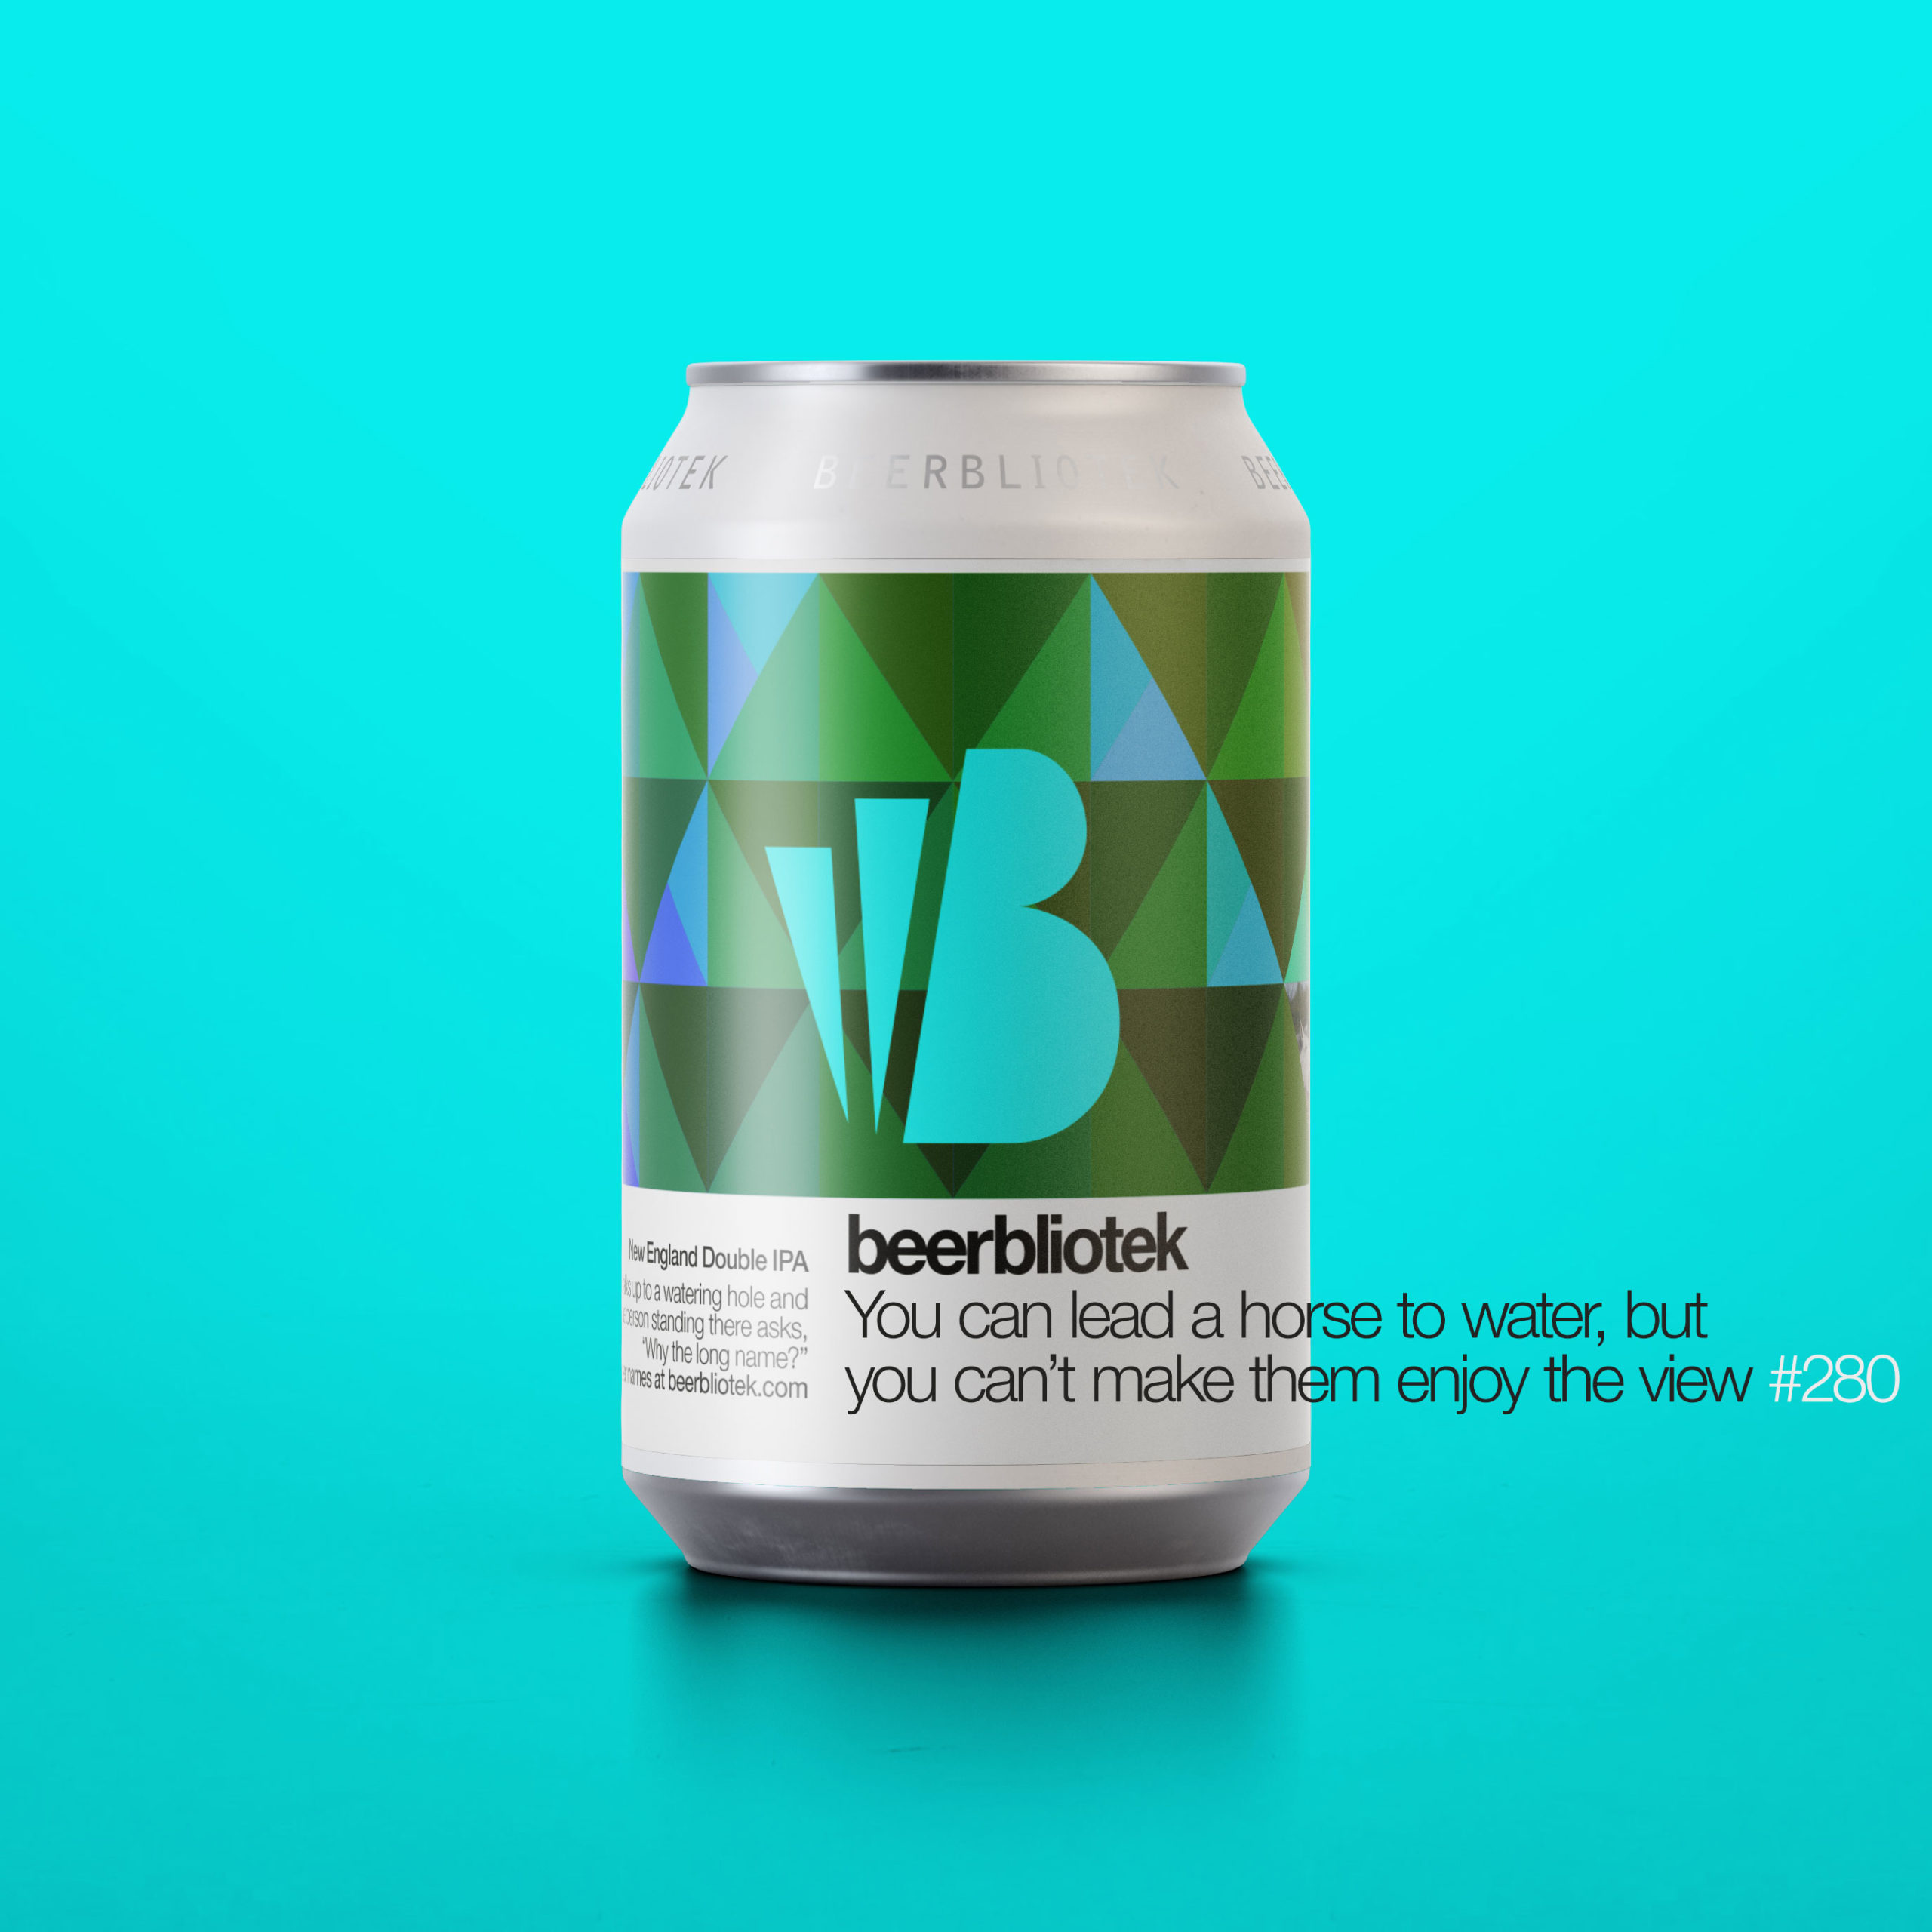 A marketing can packshot of You can lead a horse to water, but you can't make them enjoy the view, a New England Double IPA, brewed by Swedish Craft Brewery Beerbliotek.